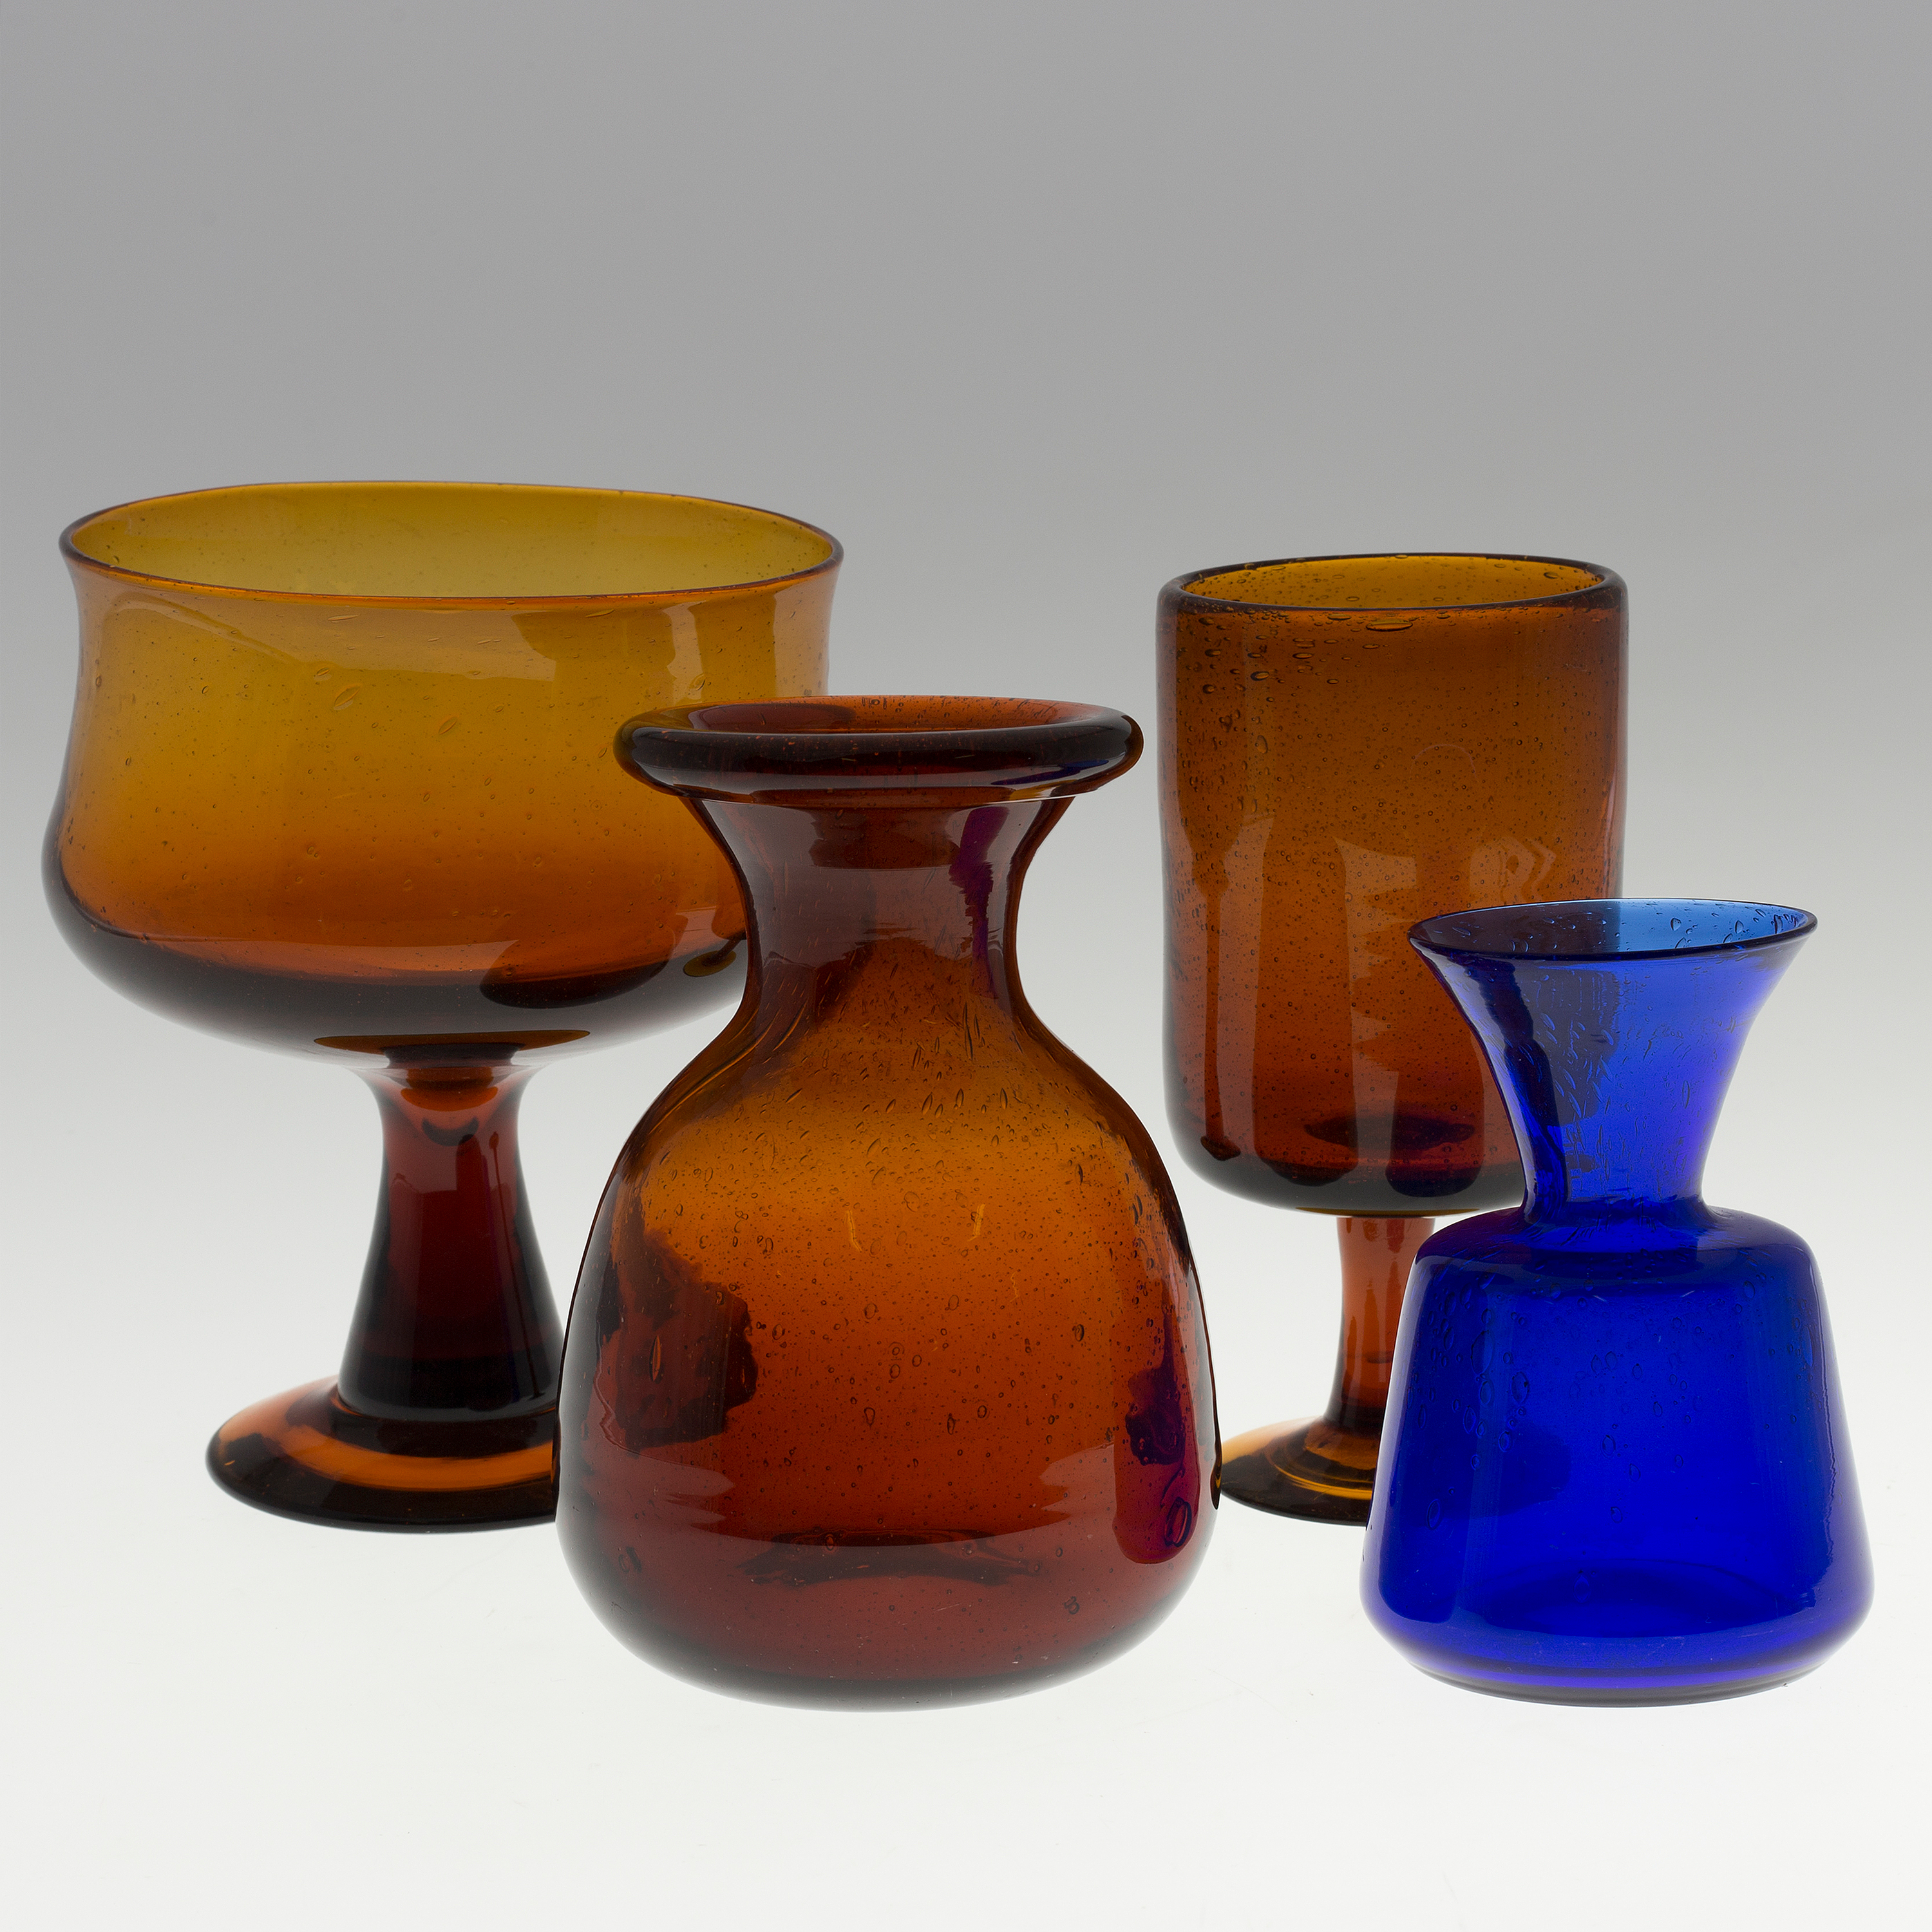 Erik hglund a set of three glass vases and a bowl by erik 10706252 bukobject reviewsmspy